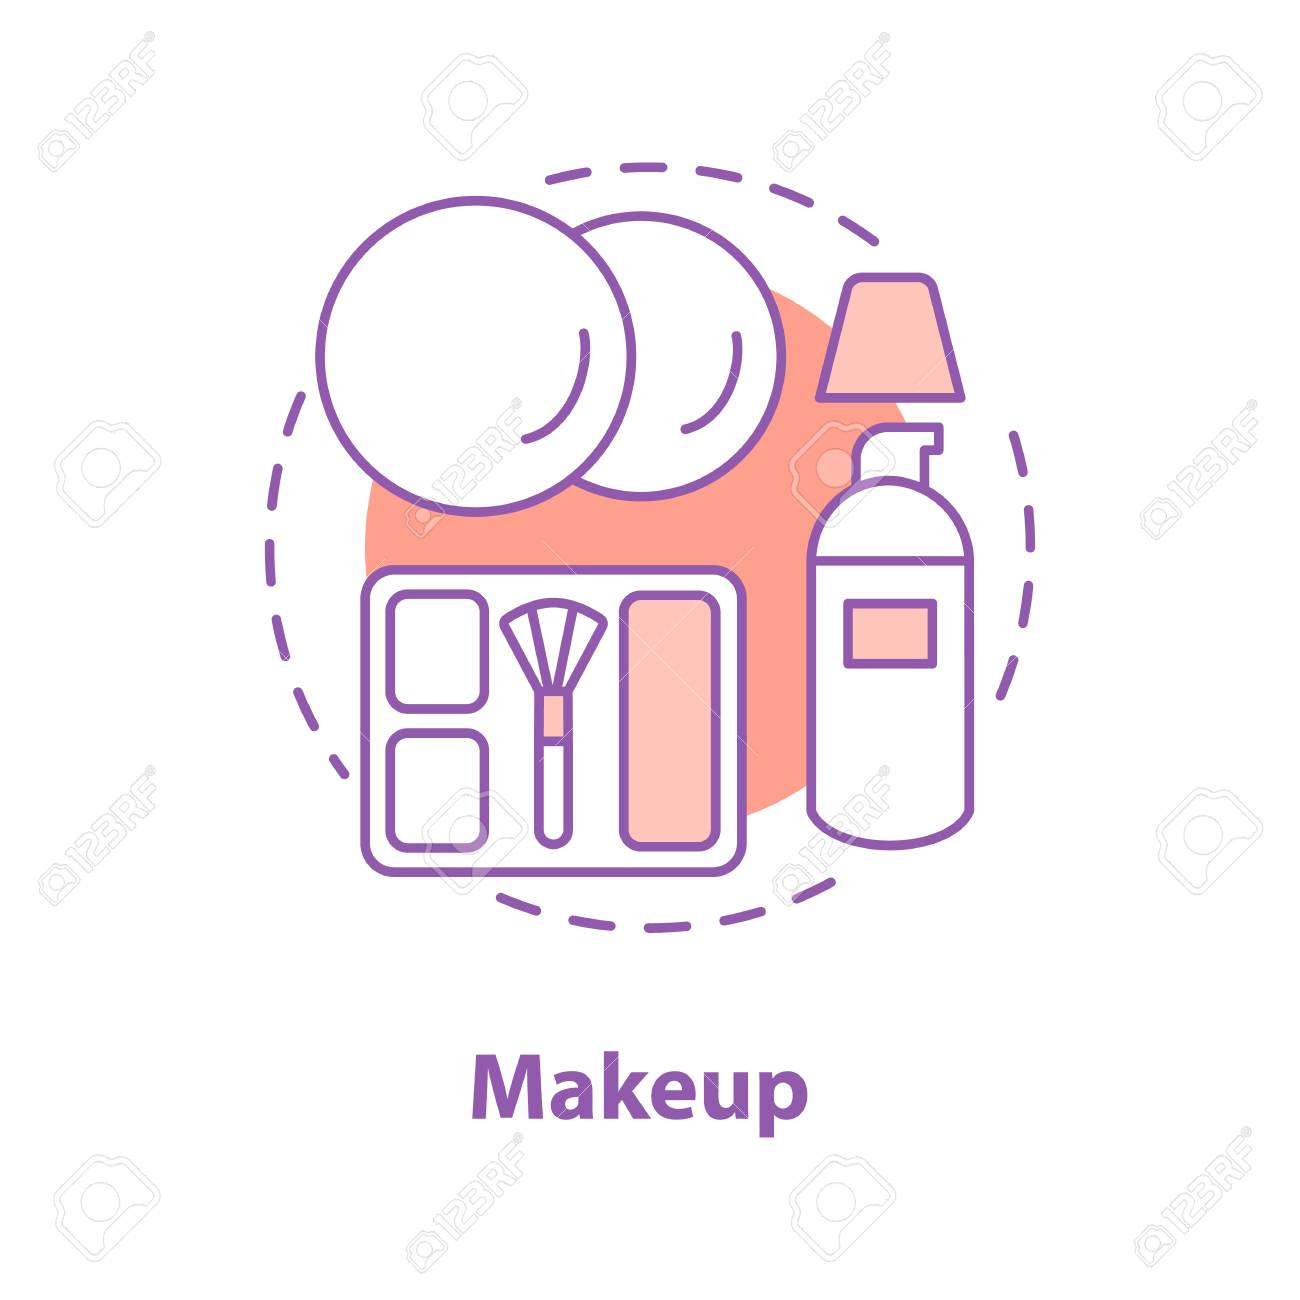 Makeup concept icon  Cosmetics idea thin line illustration  Beauty